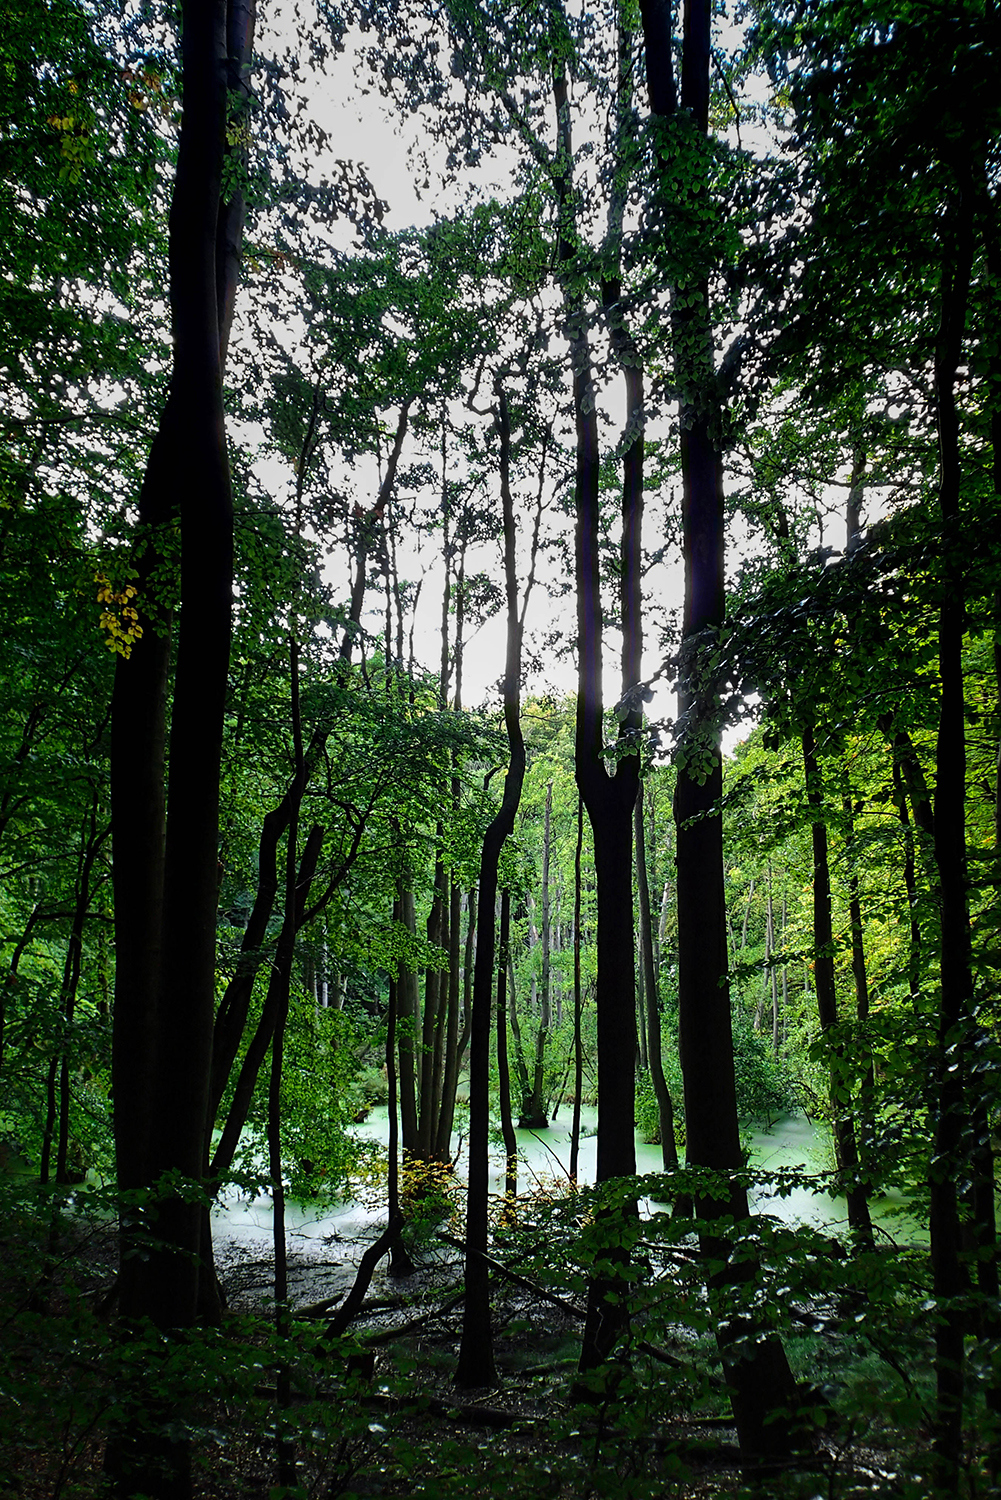 <p>A walk in a forest reveals a sort of swamp amid the trees. <br /></p>